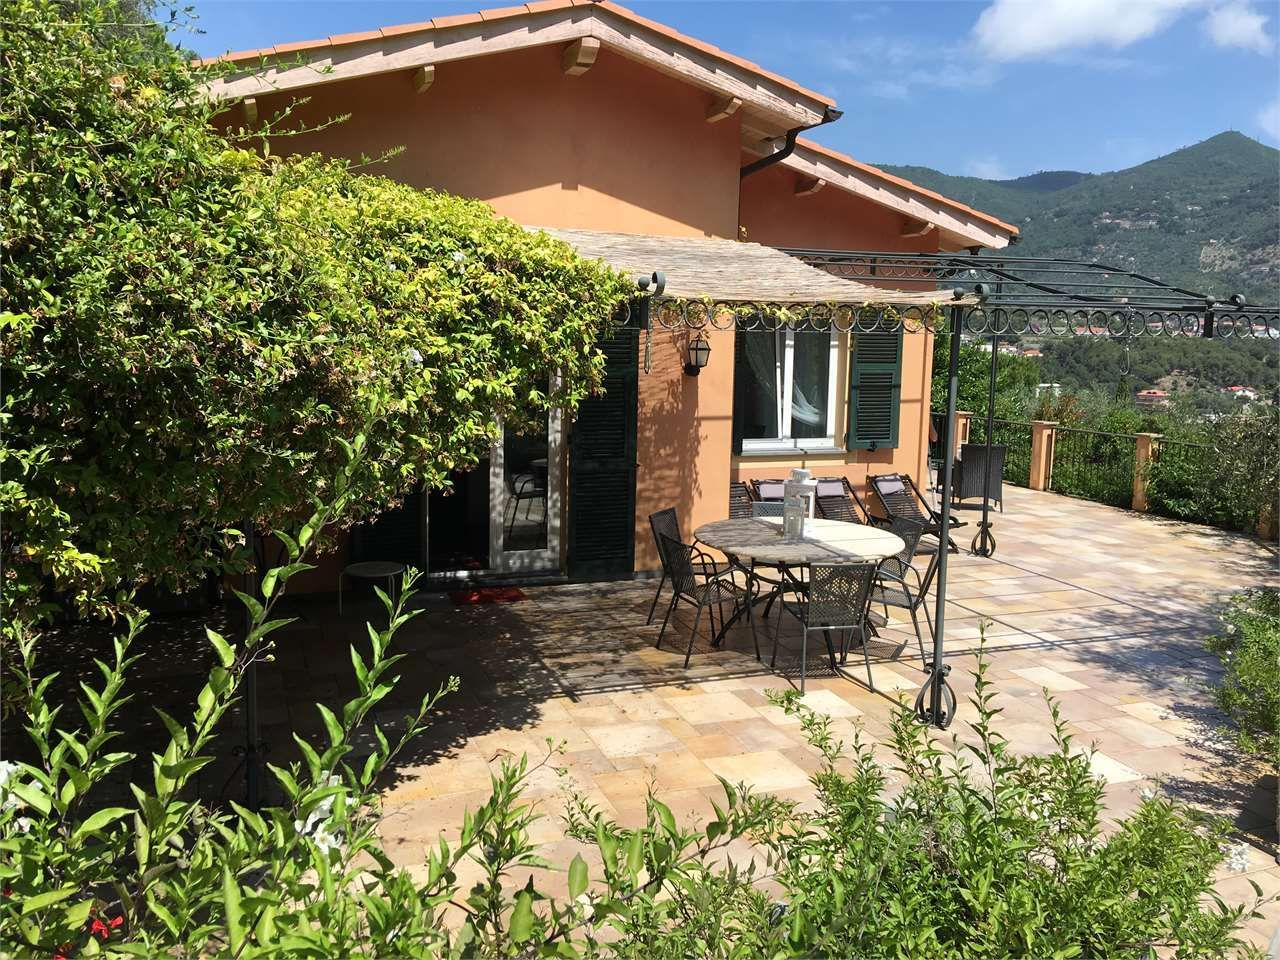 Rental properties abroad by the sea in Liguria